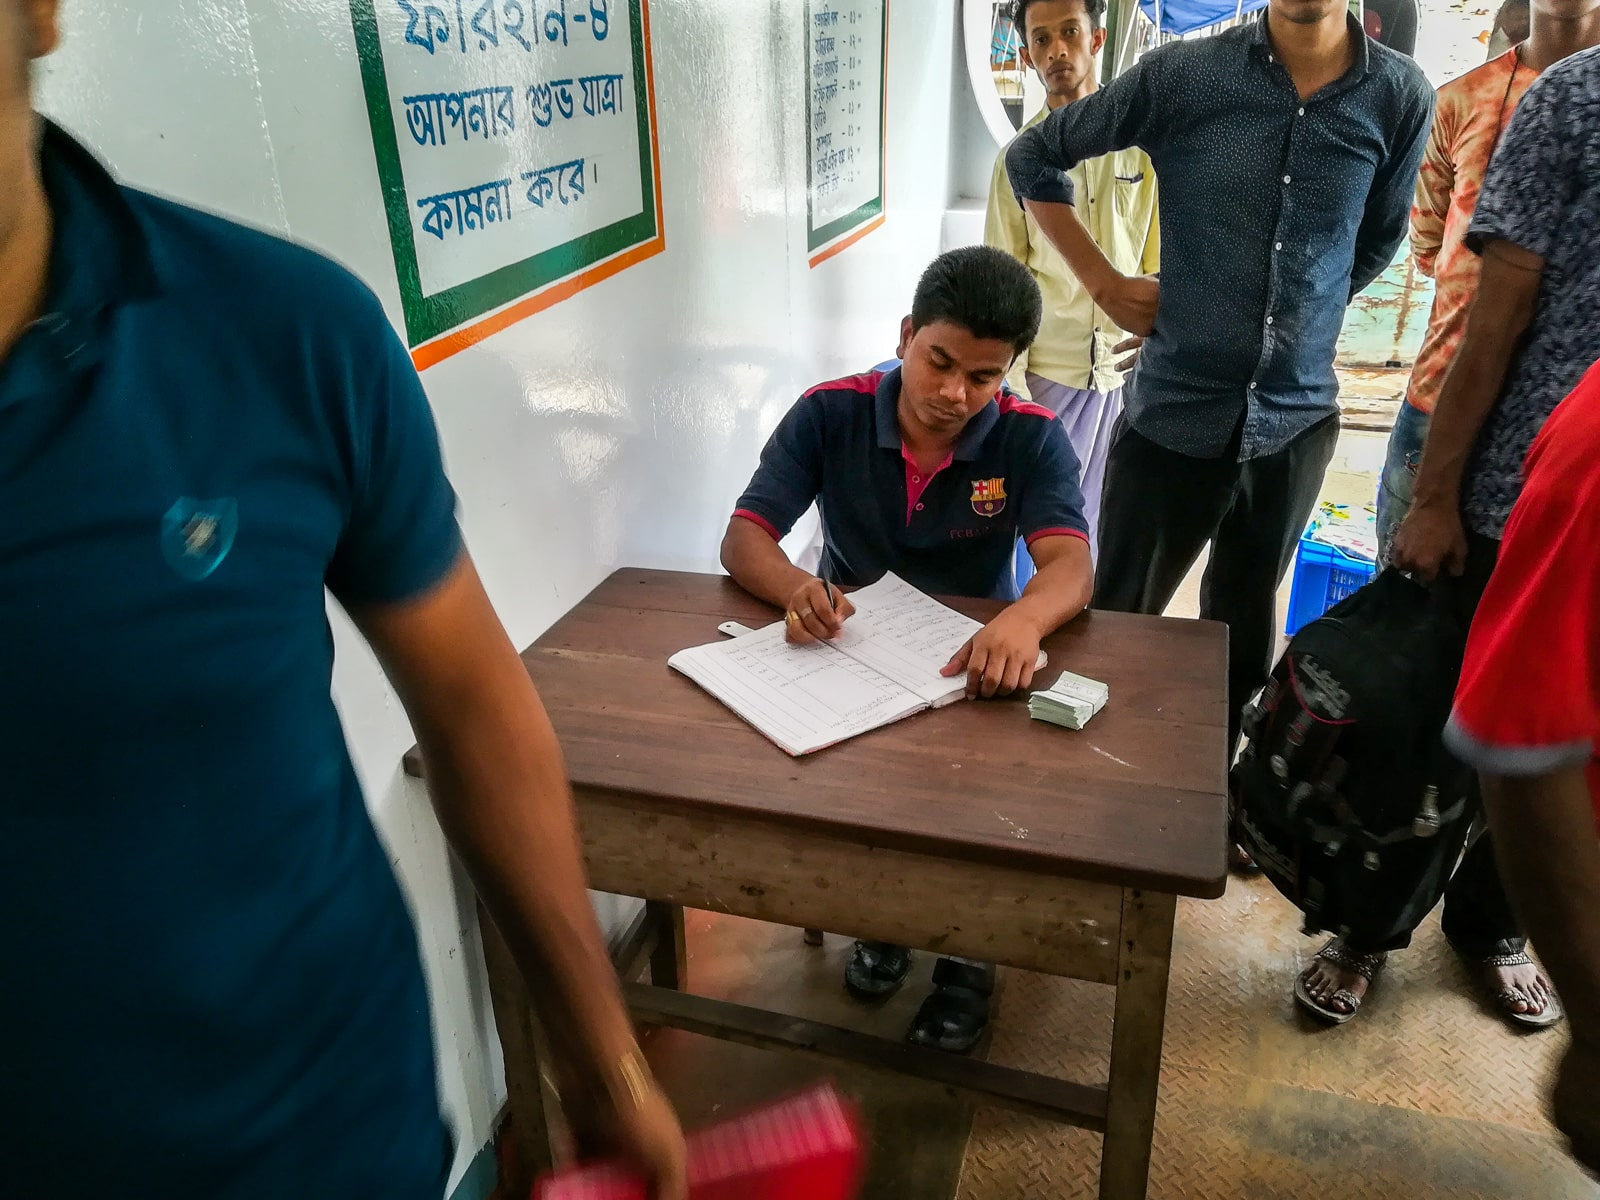 Guide to launches in Bangladesh - Ticket desk on launch boat - Lost With Purpose travel blog